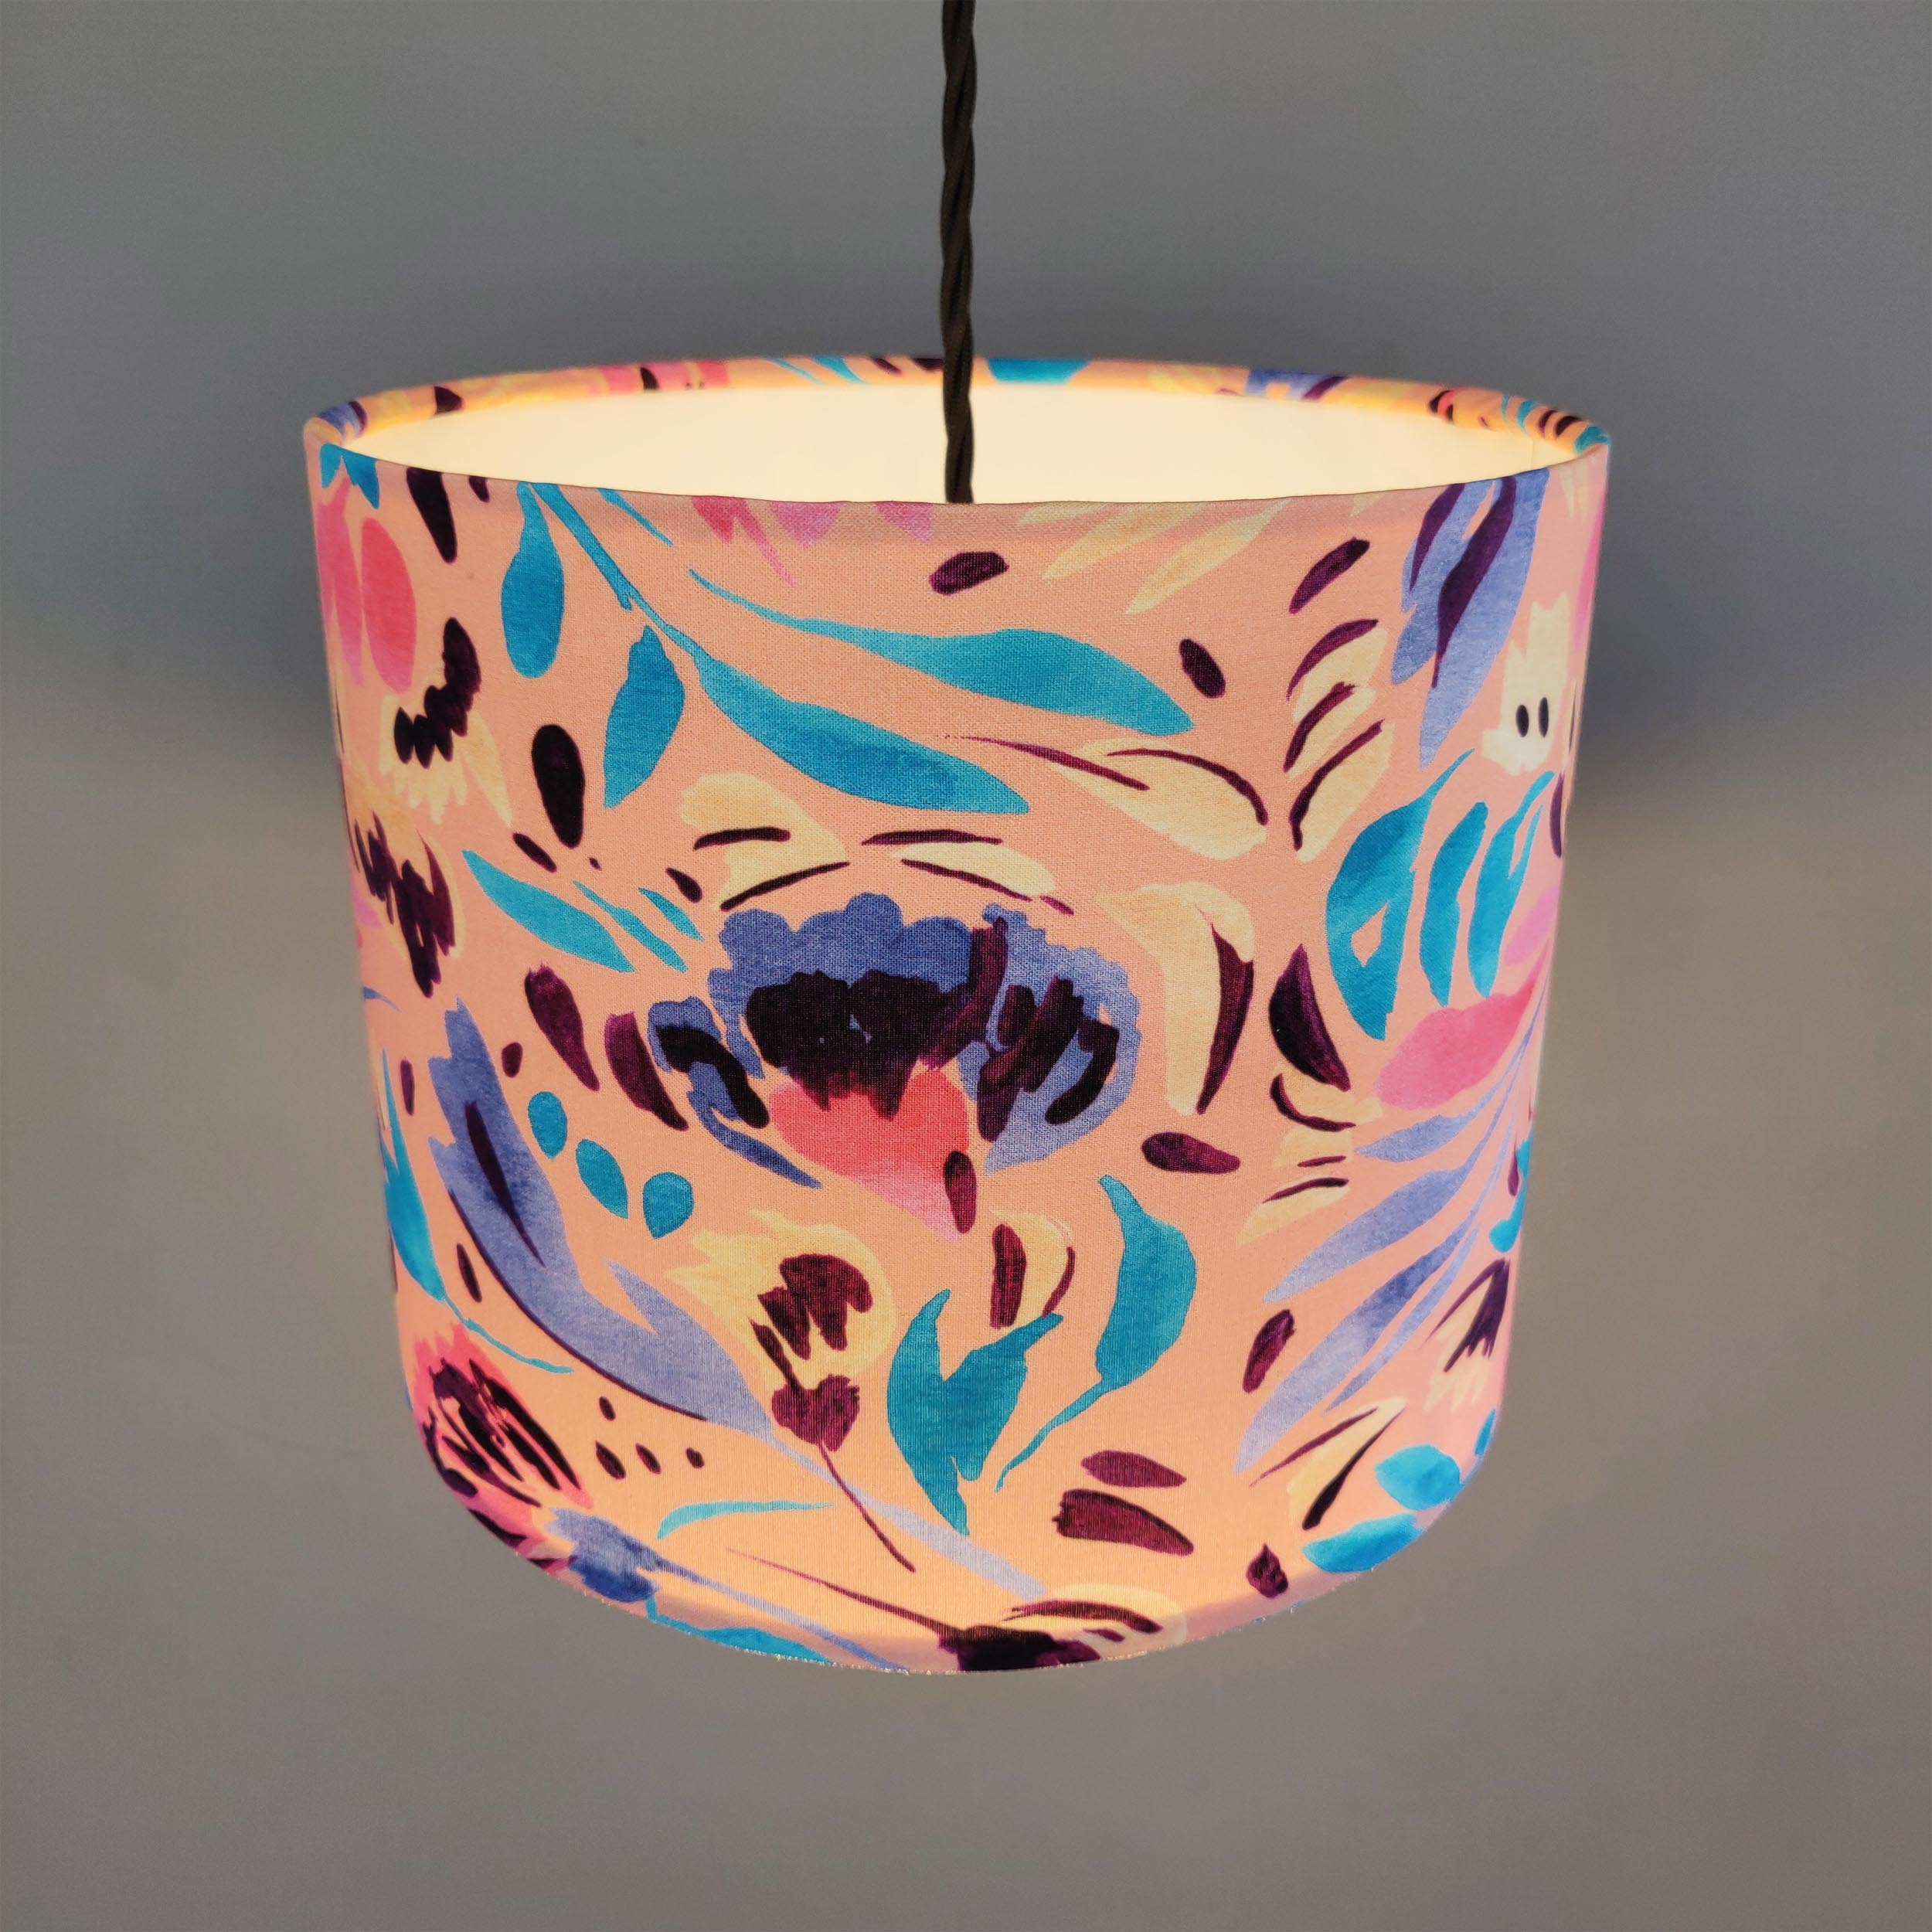 Windy Floral Lampshade in Coral